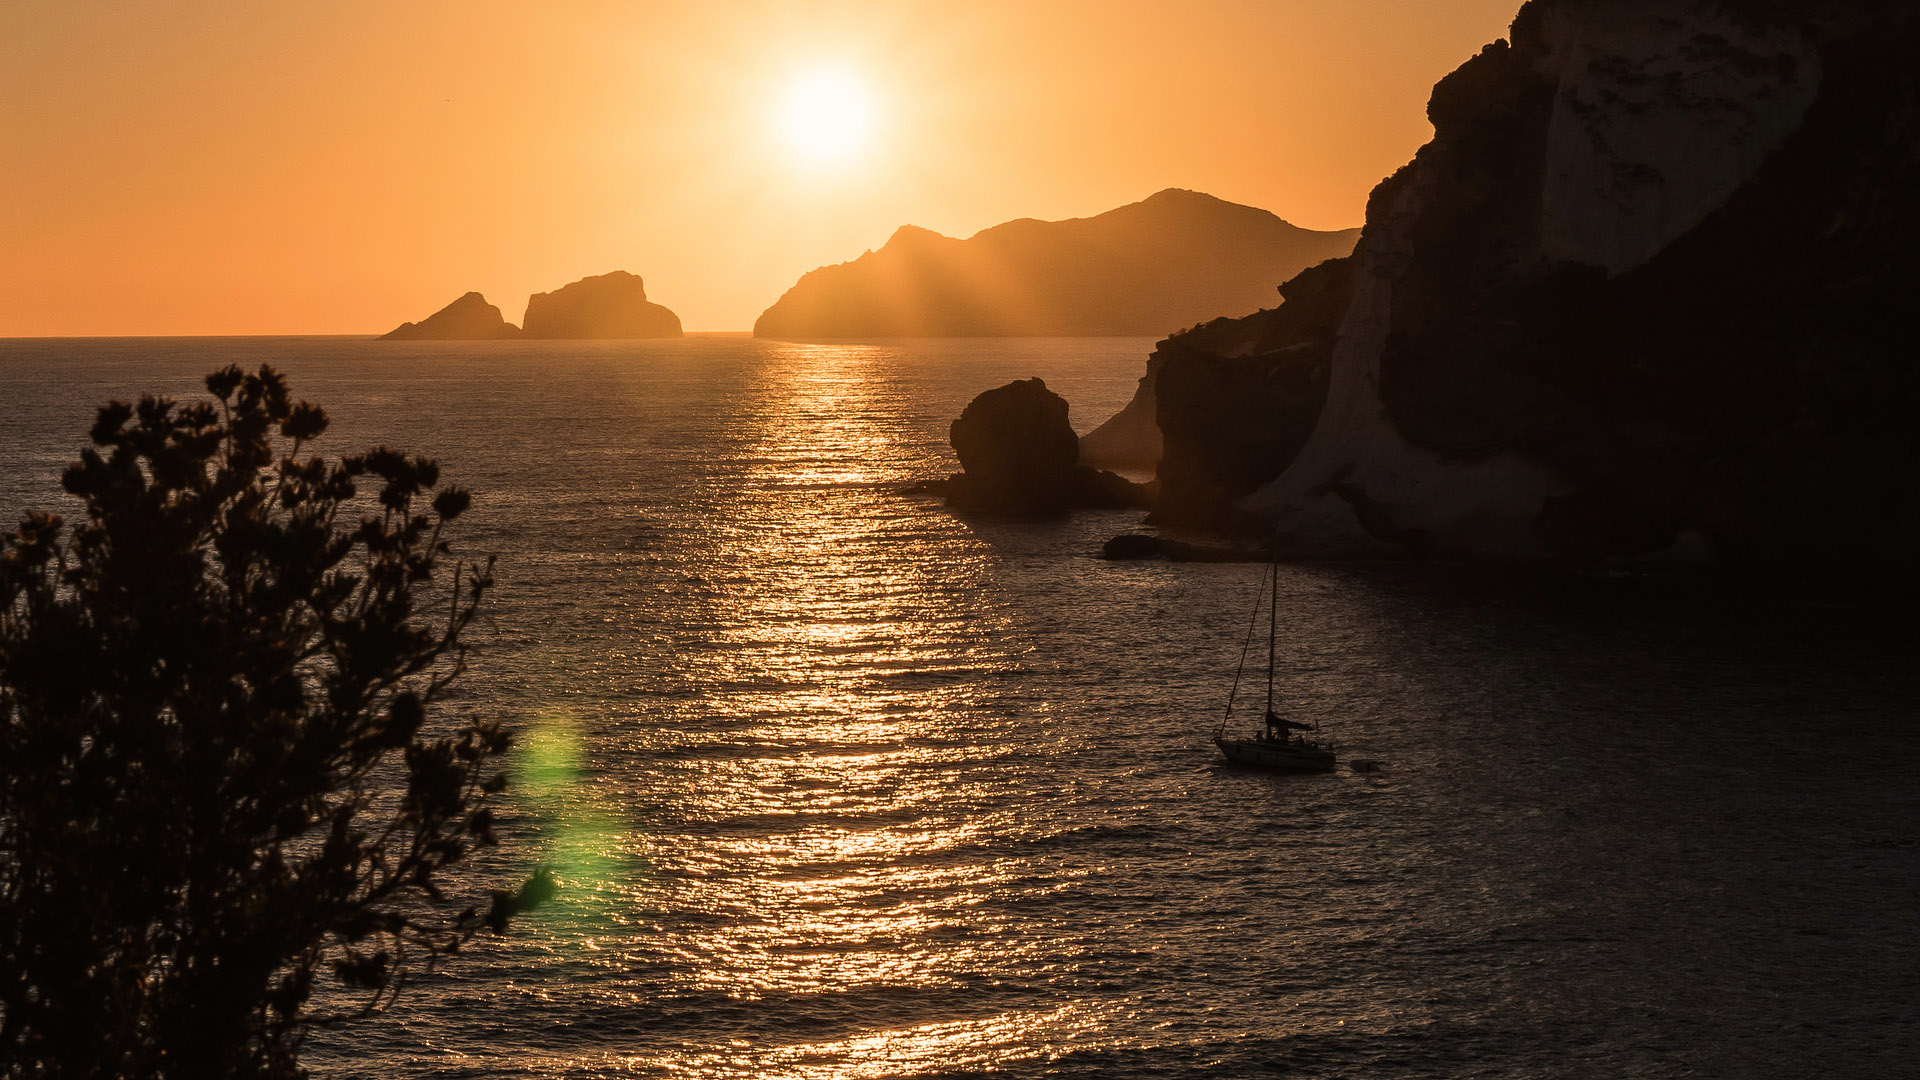 Photofocus Photographer of the Day Simone D'Alessio Sunset on Palmora. Travel